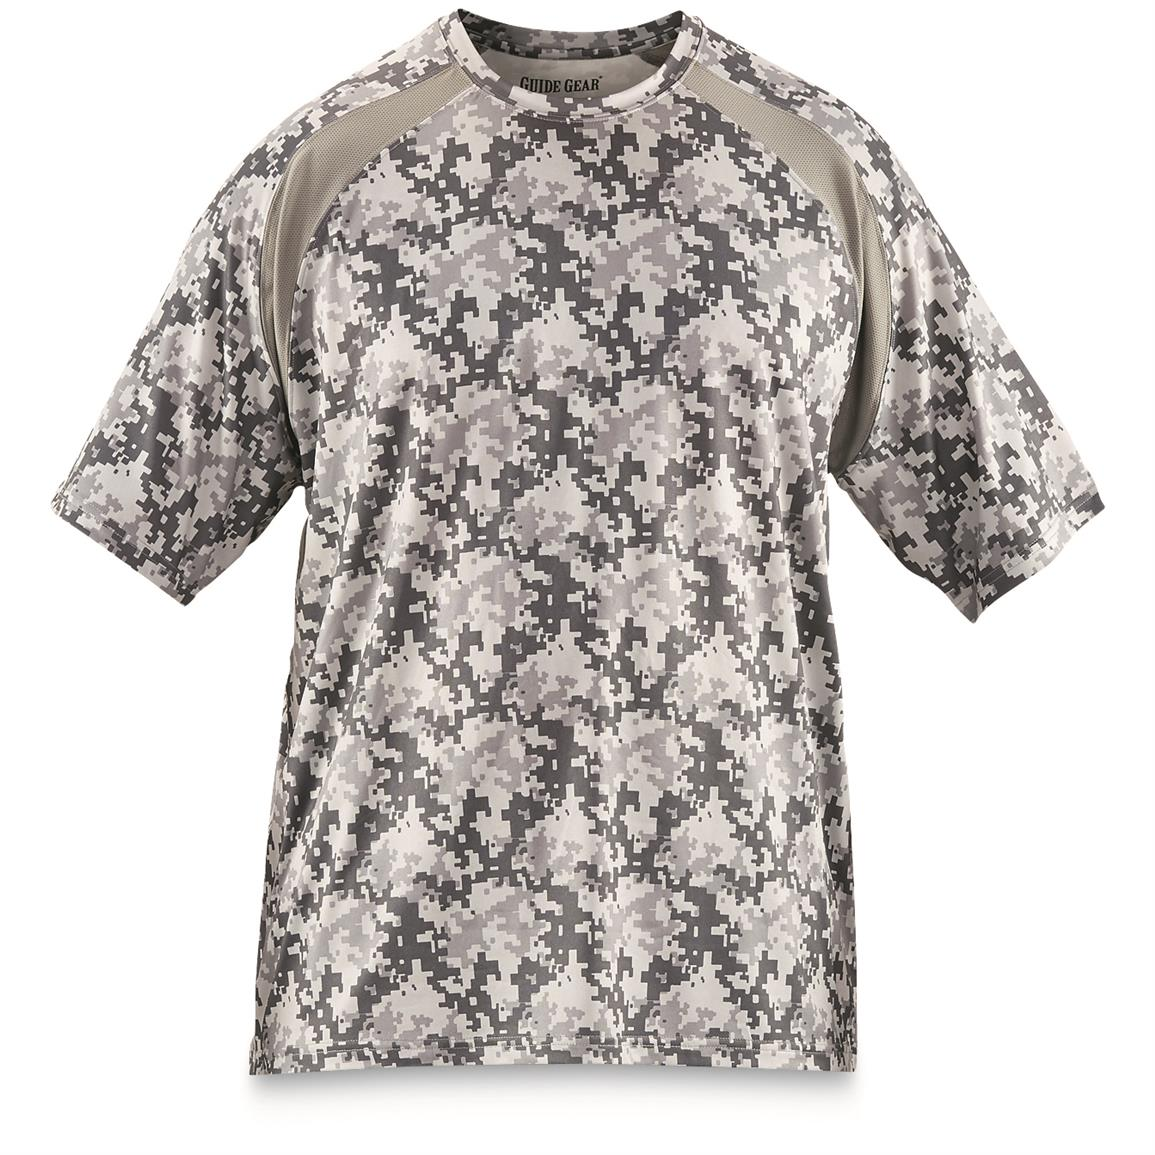 Guide Gear Men's Performance Fishing Short Sleeve T-Shirt, Gray Digi Camo